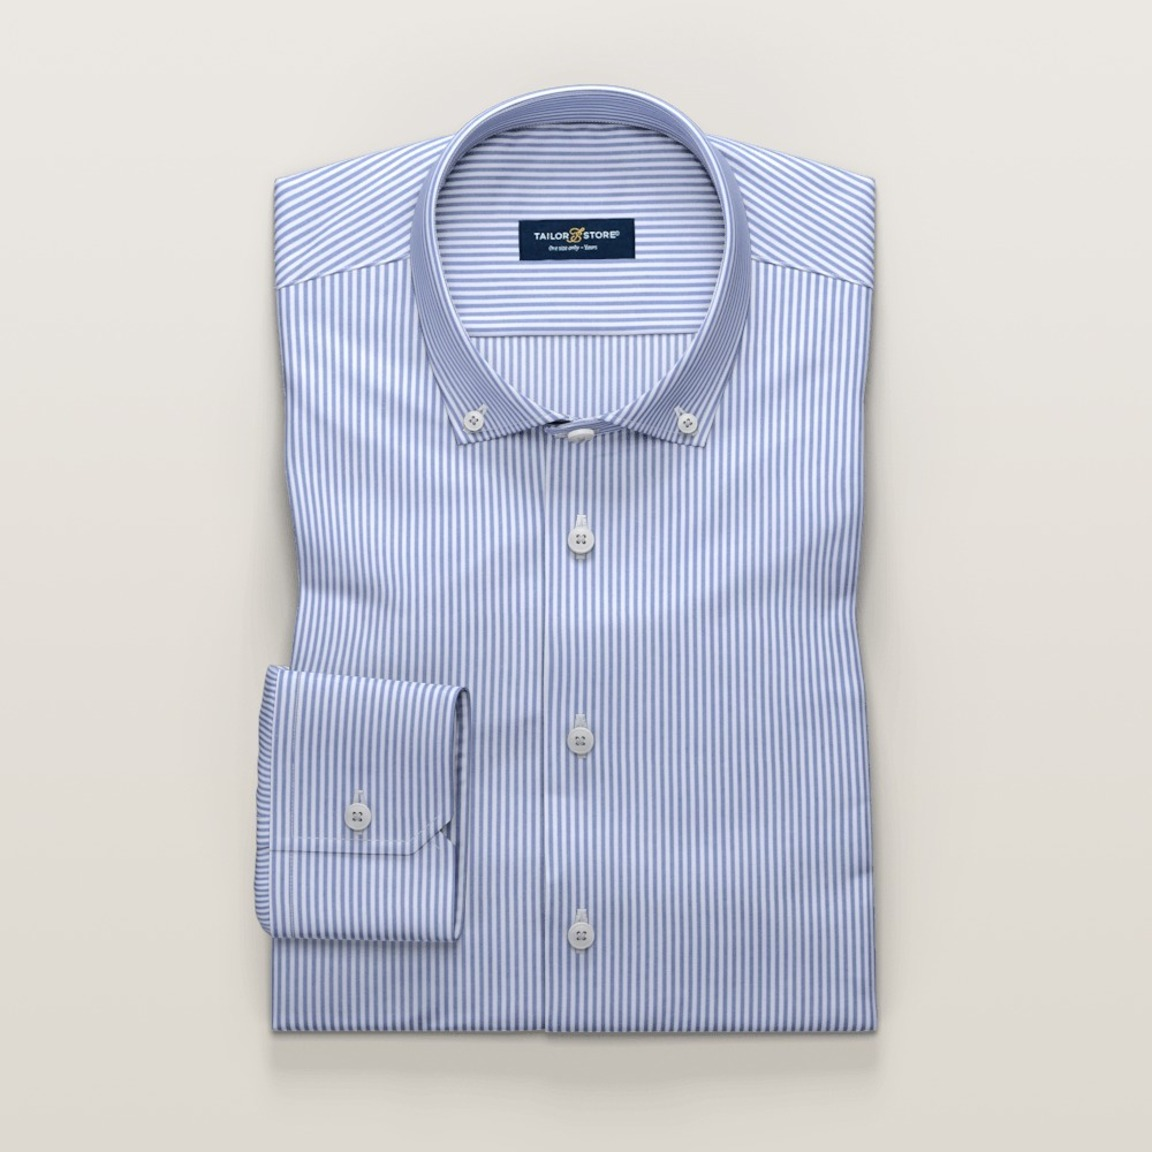 Navy striped oxford business shirt